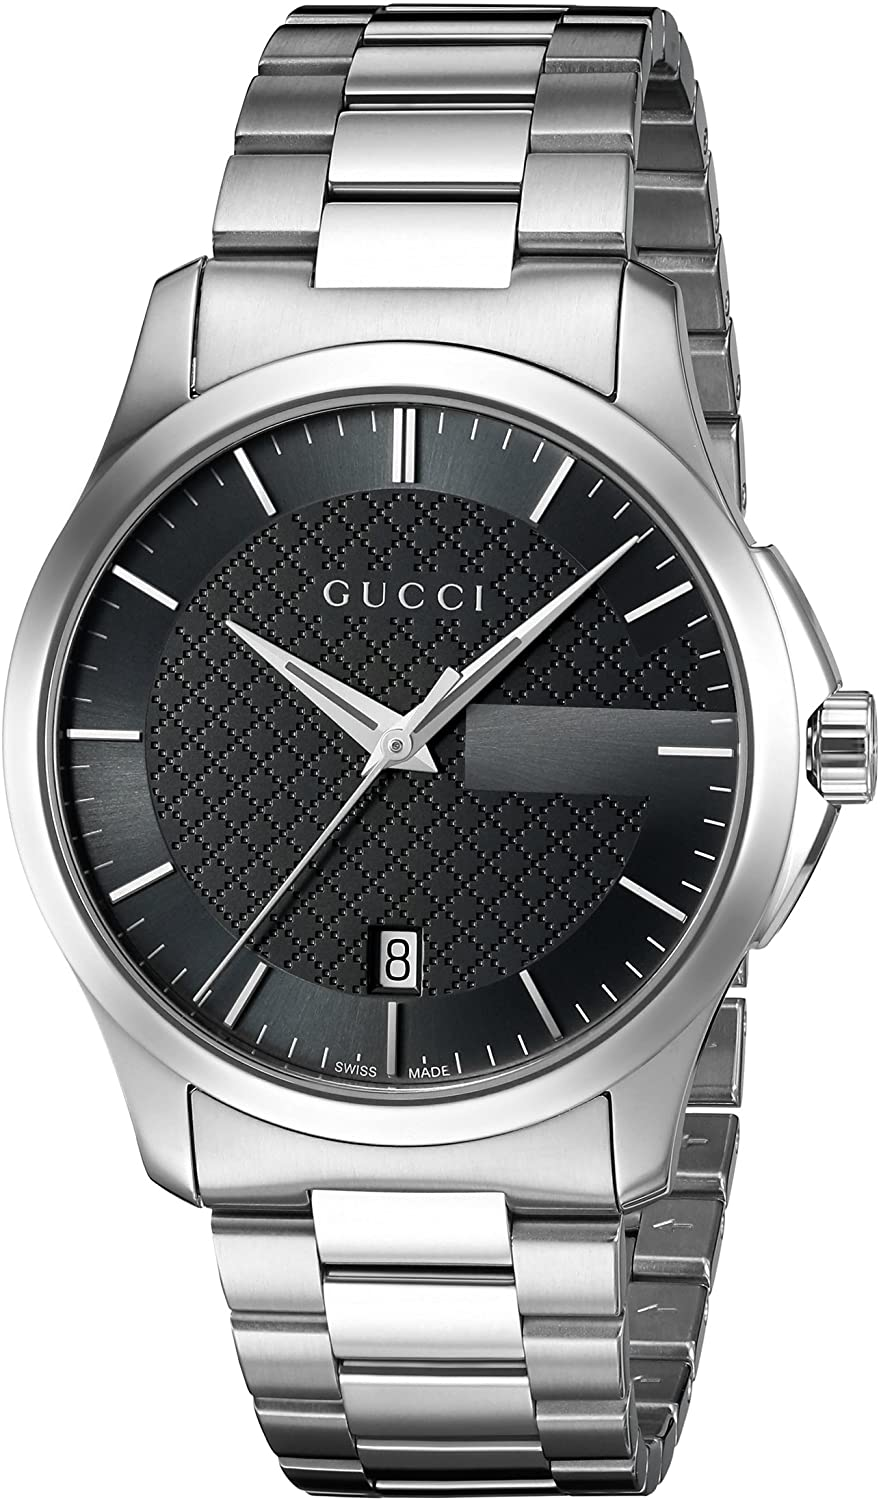 Gucci 'G-Timelss' Quartz Stainless Steel Watch, Color:Silver-Toned (Model: YA126457)